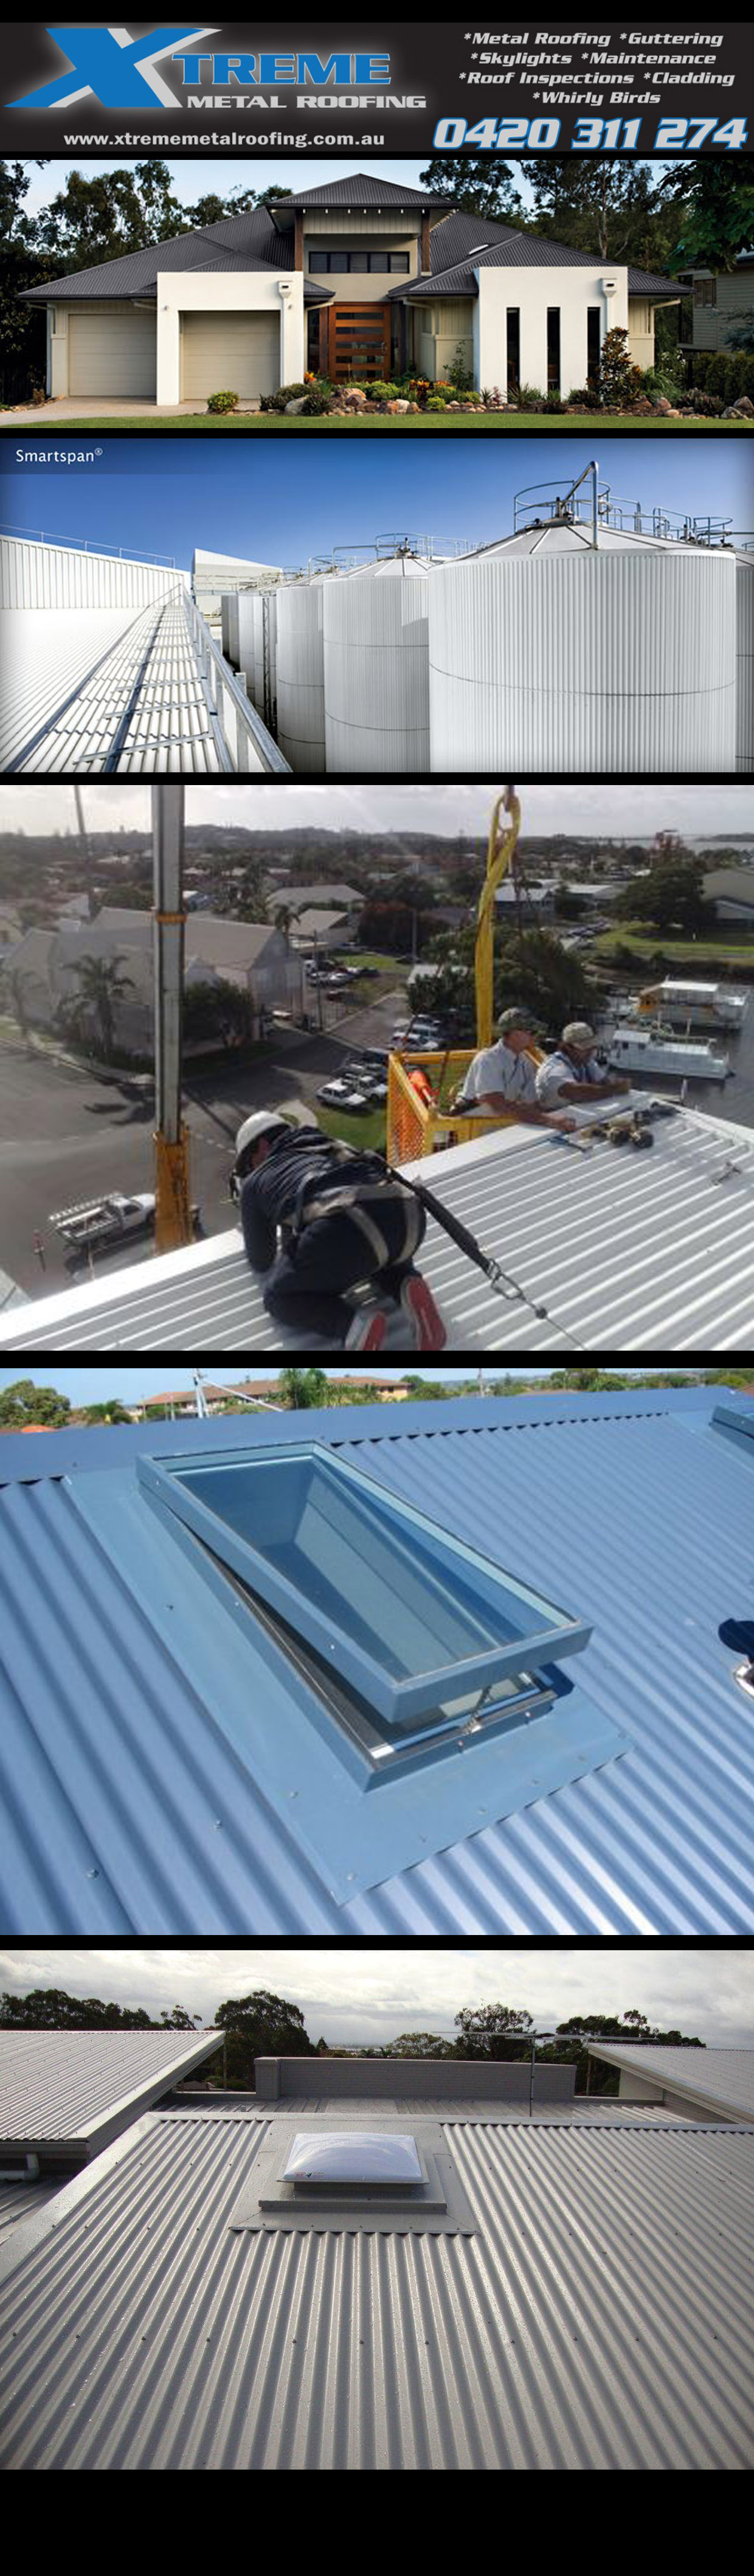 Xtreme Metal Roofing